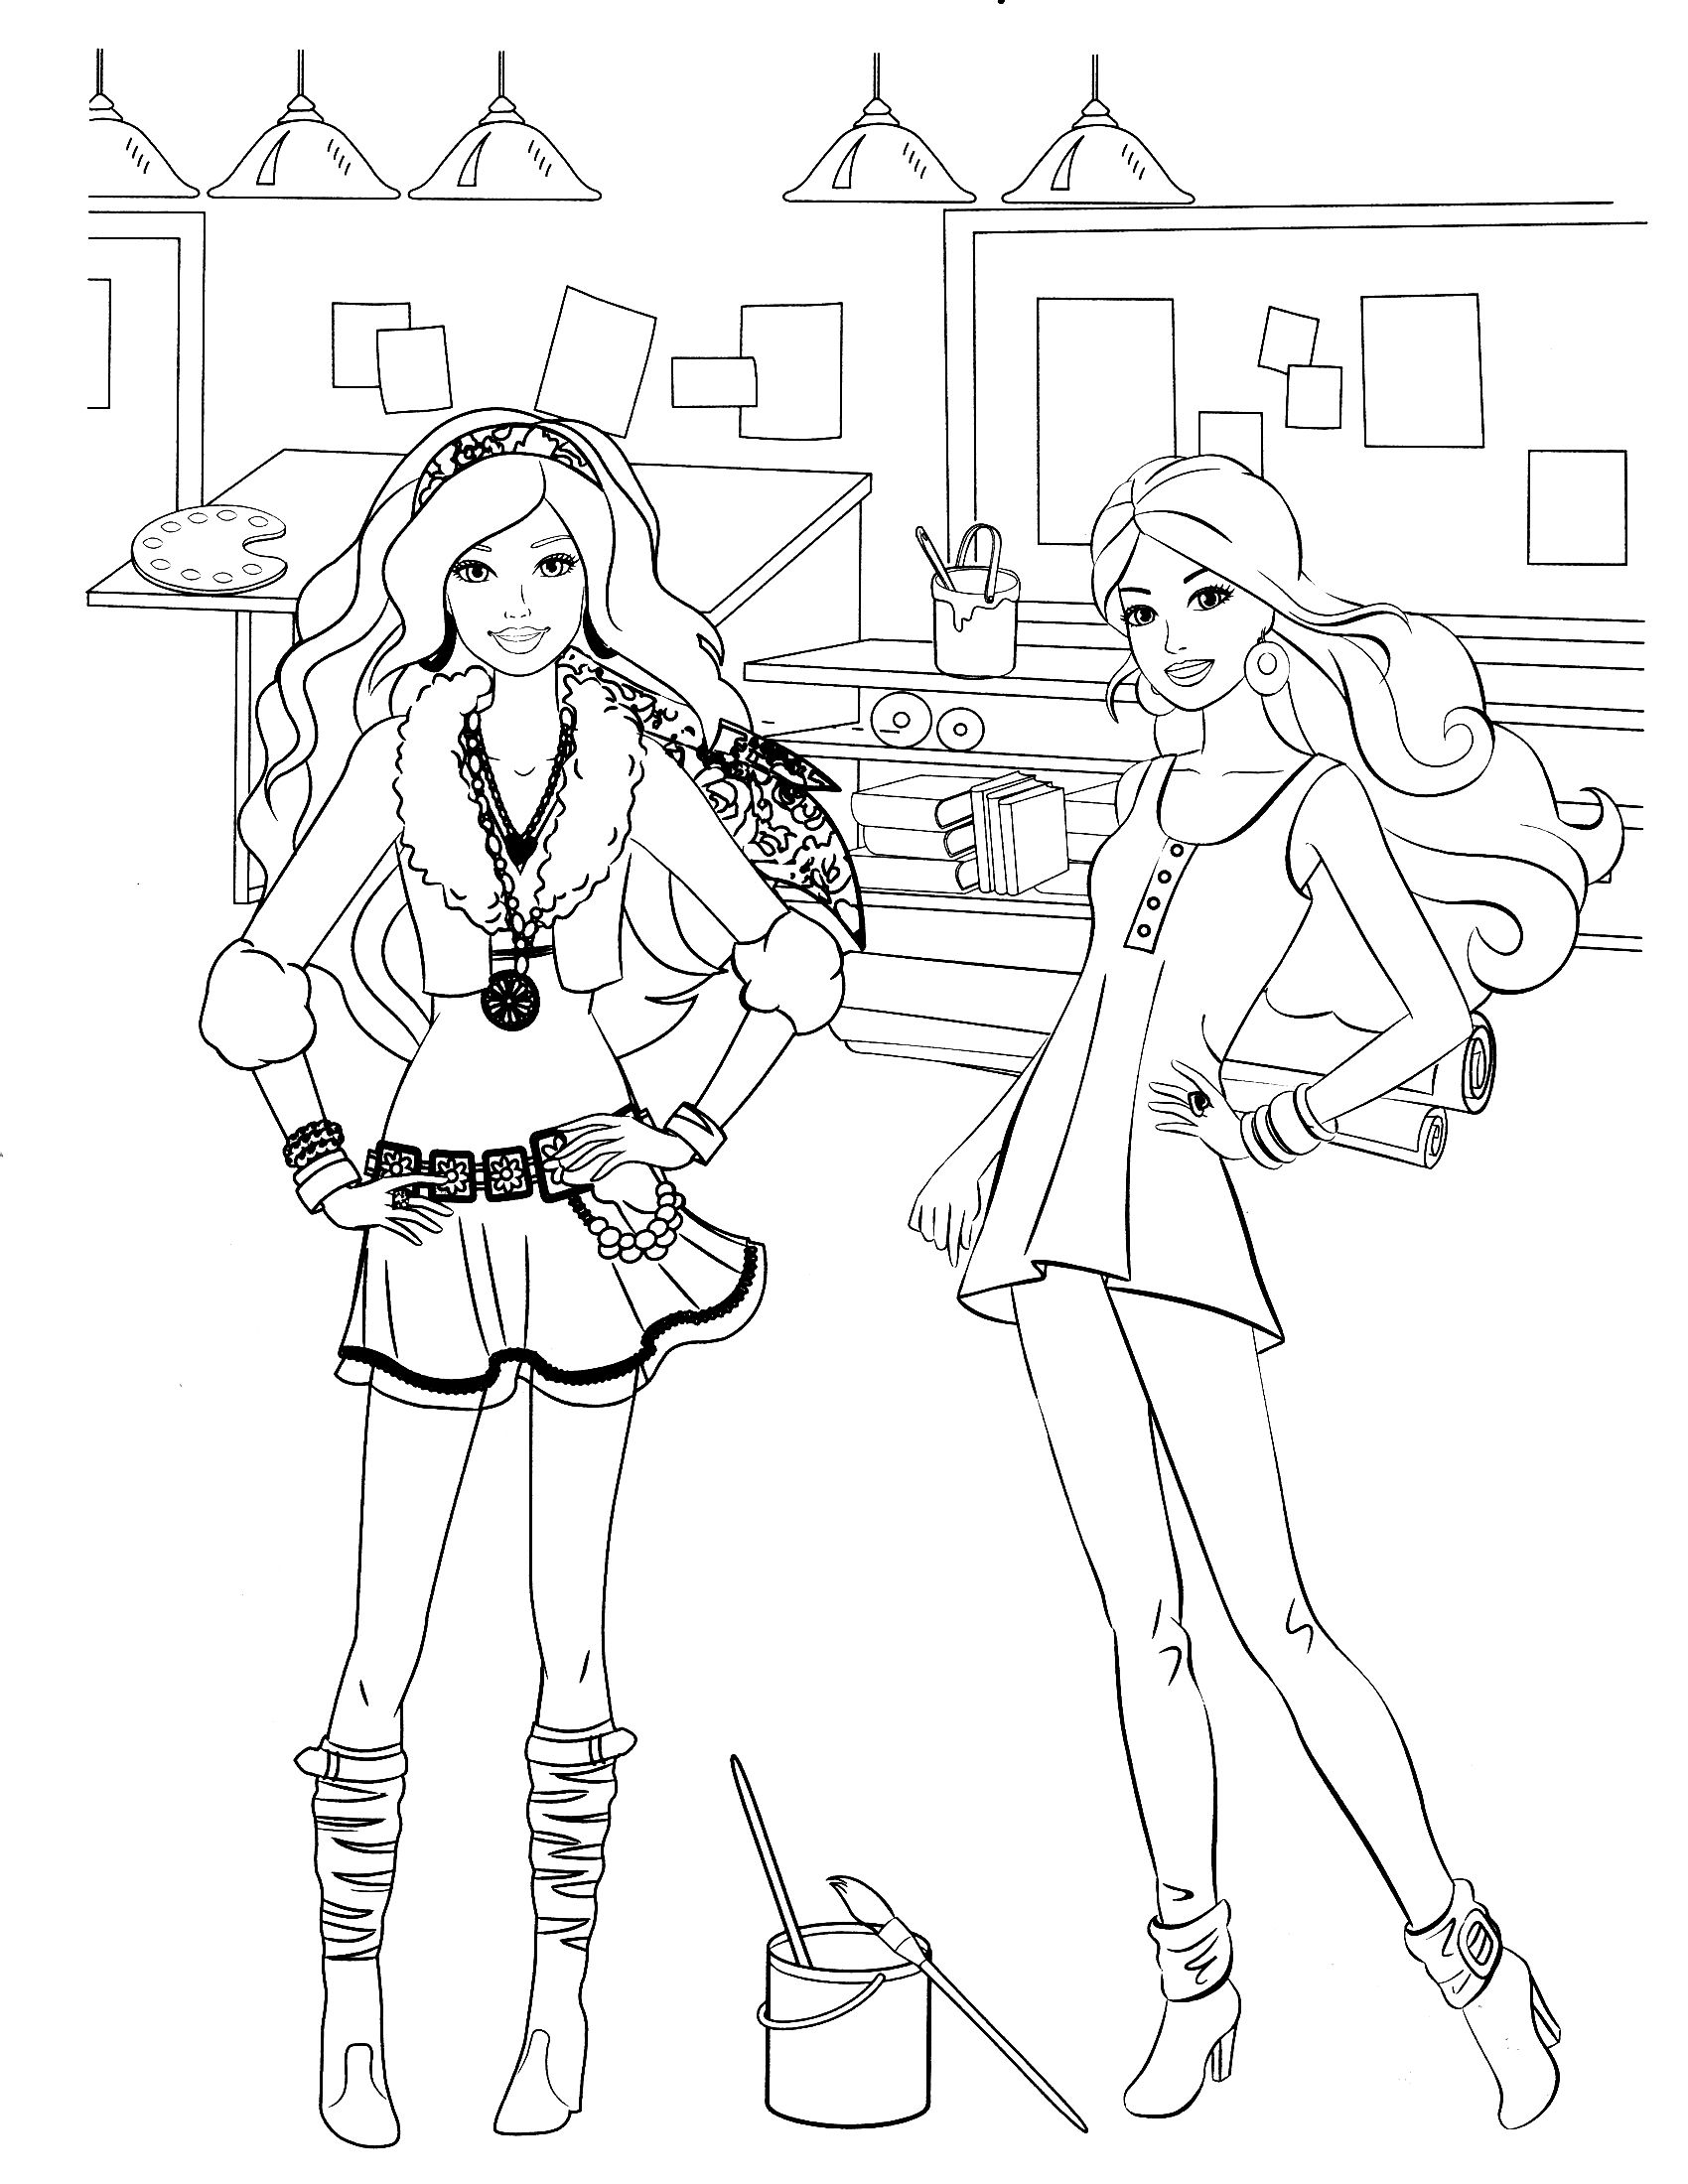 Pin By Lina Kariban On Art In 2020 Barbie Coloring Pages Cartoon Coloring Pages Barbie Coloring